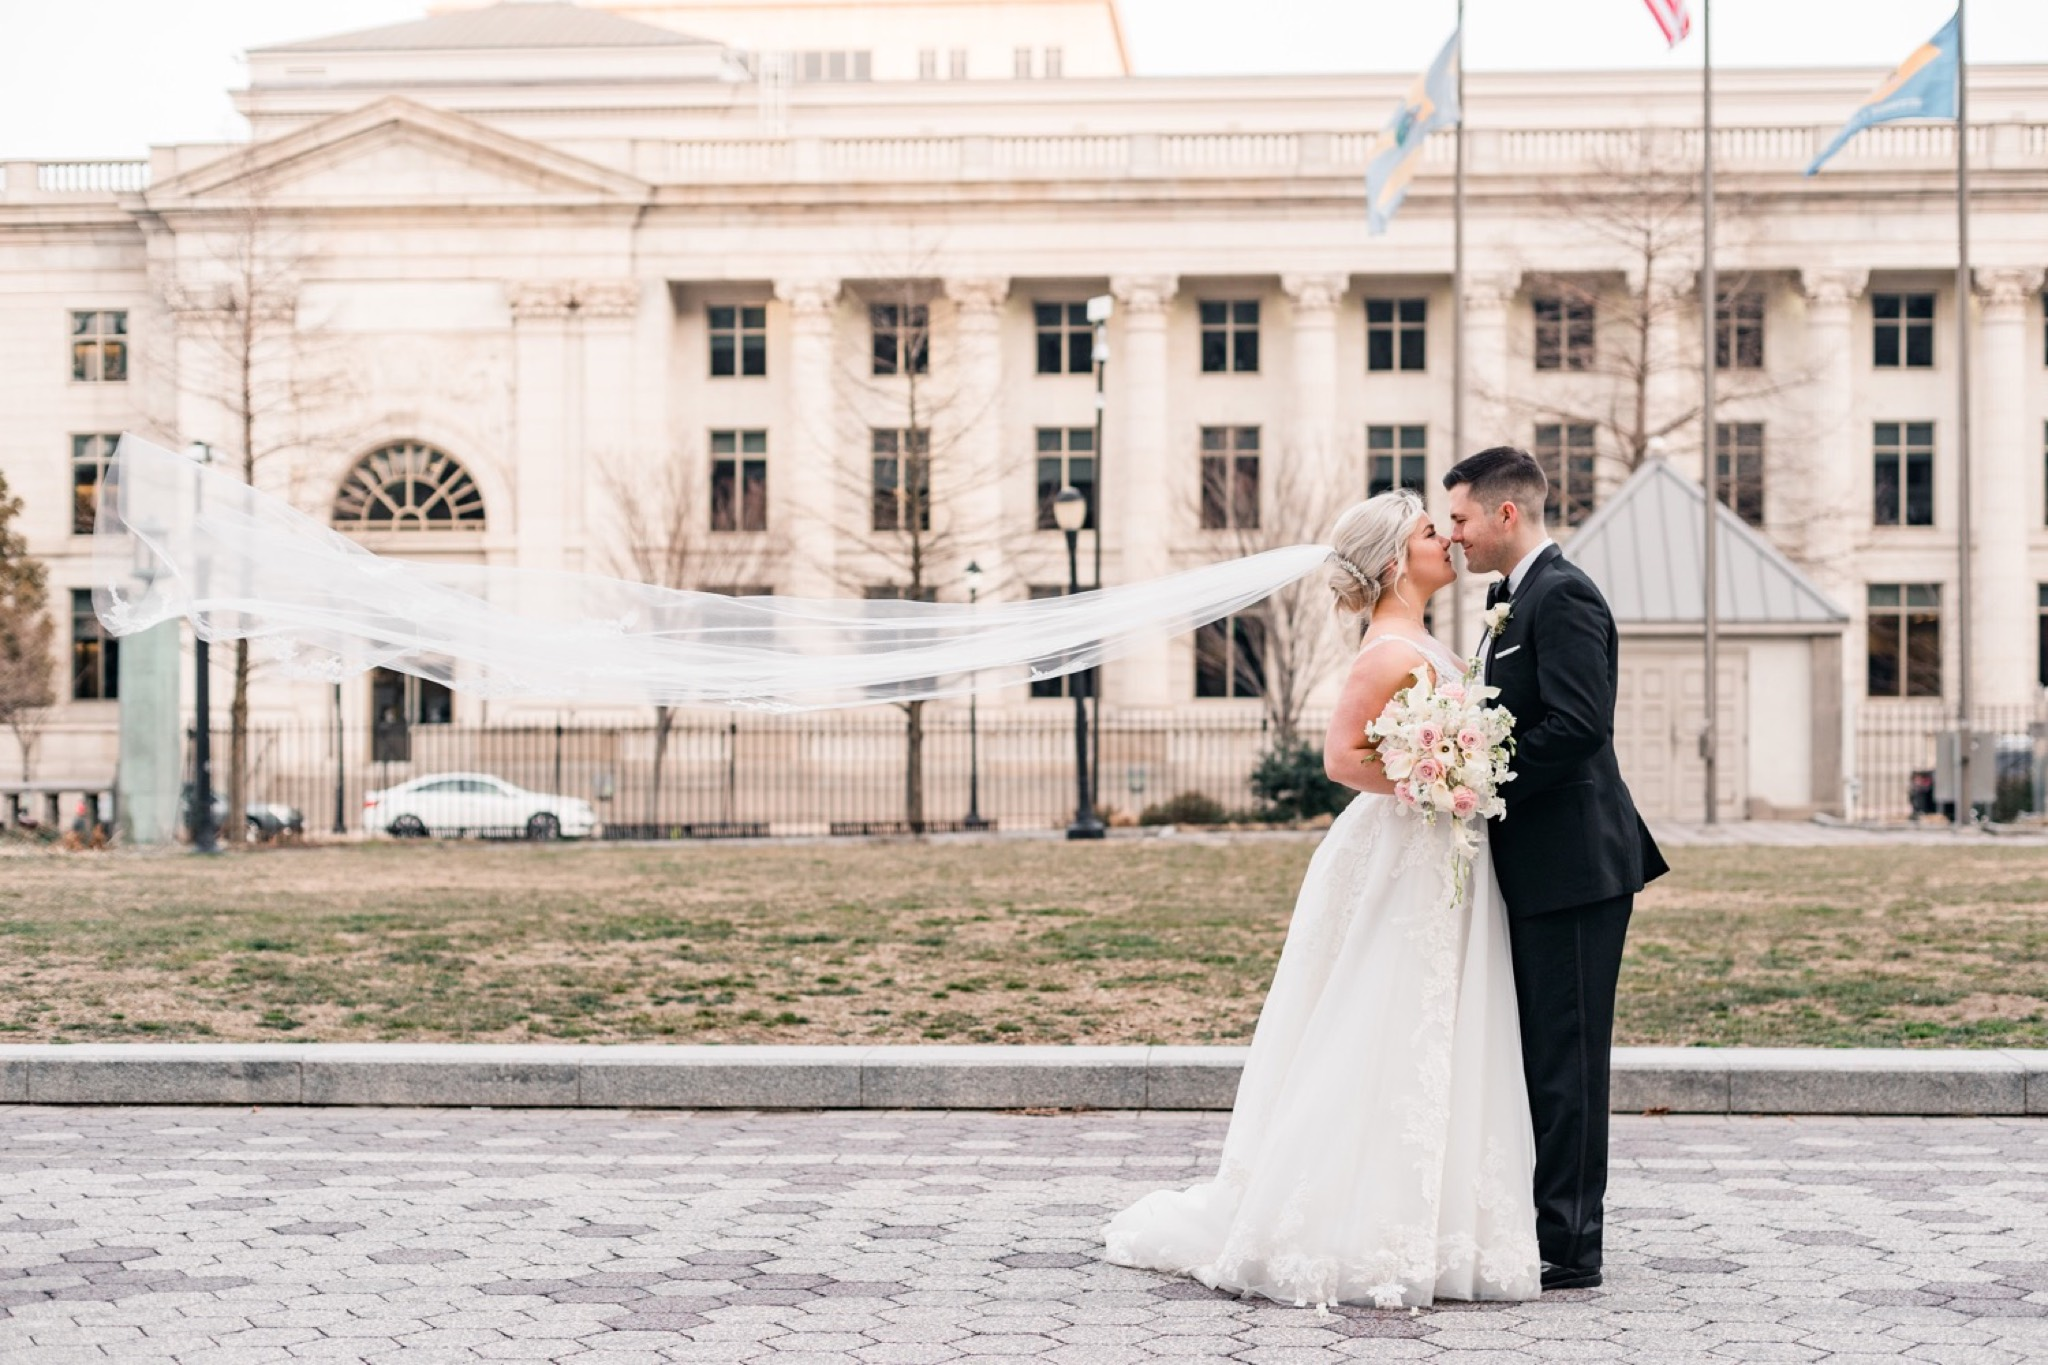 Jim & Alyssa's Black Tie Wedding at The Hotel DuPont in Wilmington, DE Photos